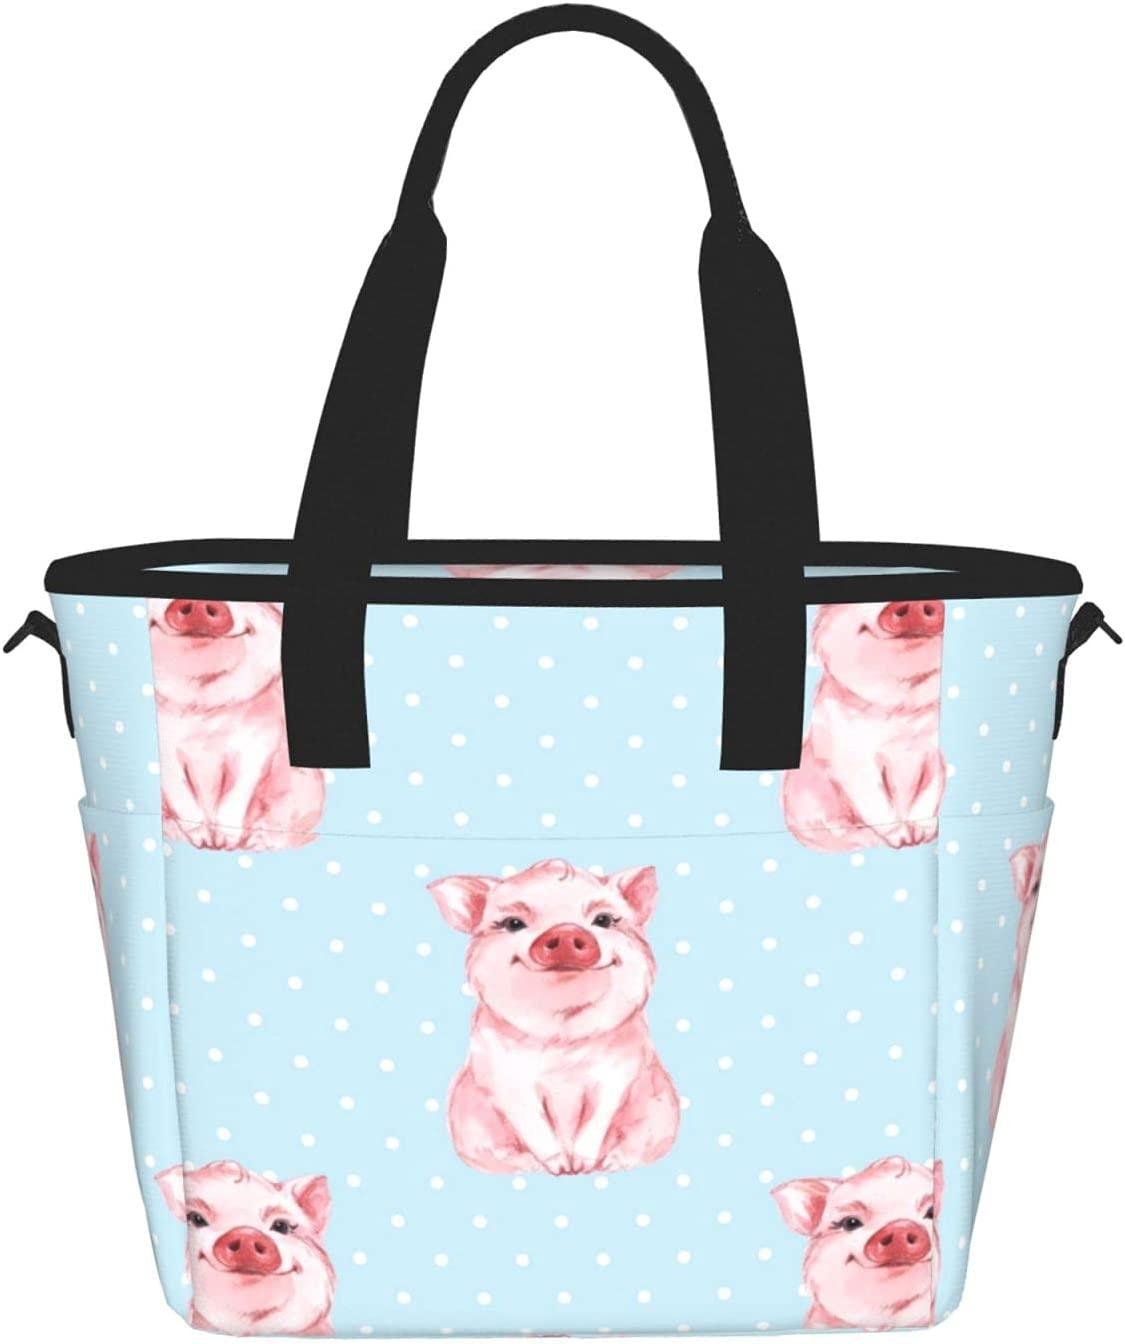 Pig with Polka Dot quality assurance Background Reusable Bag Tote Lunch Insulated 5 ☆ very popular